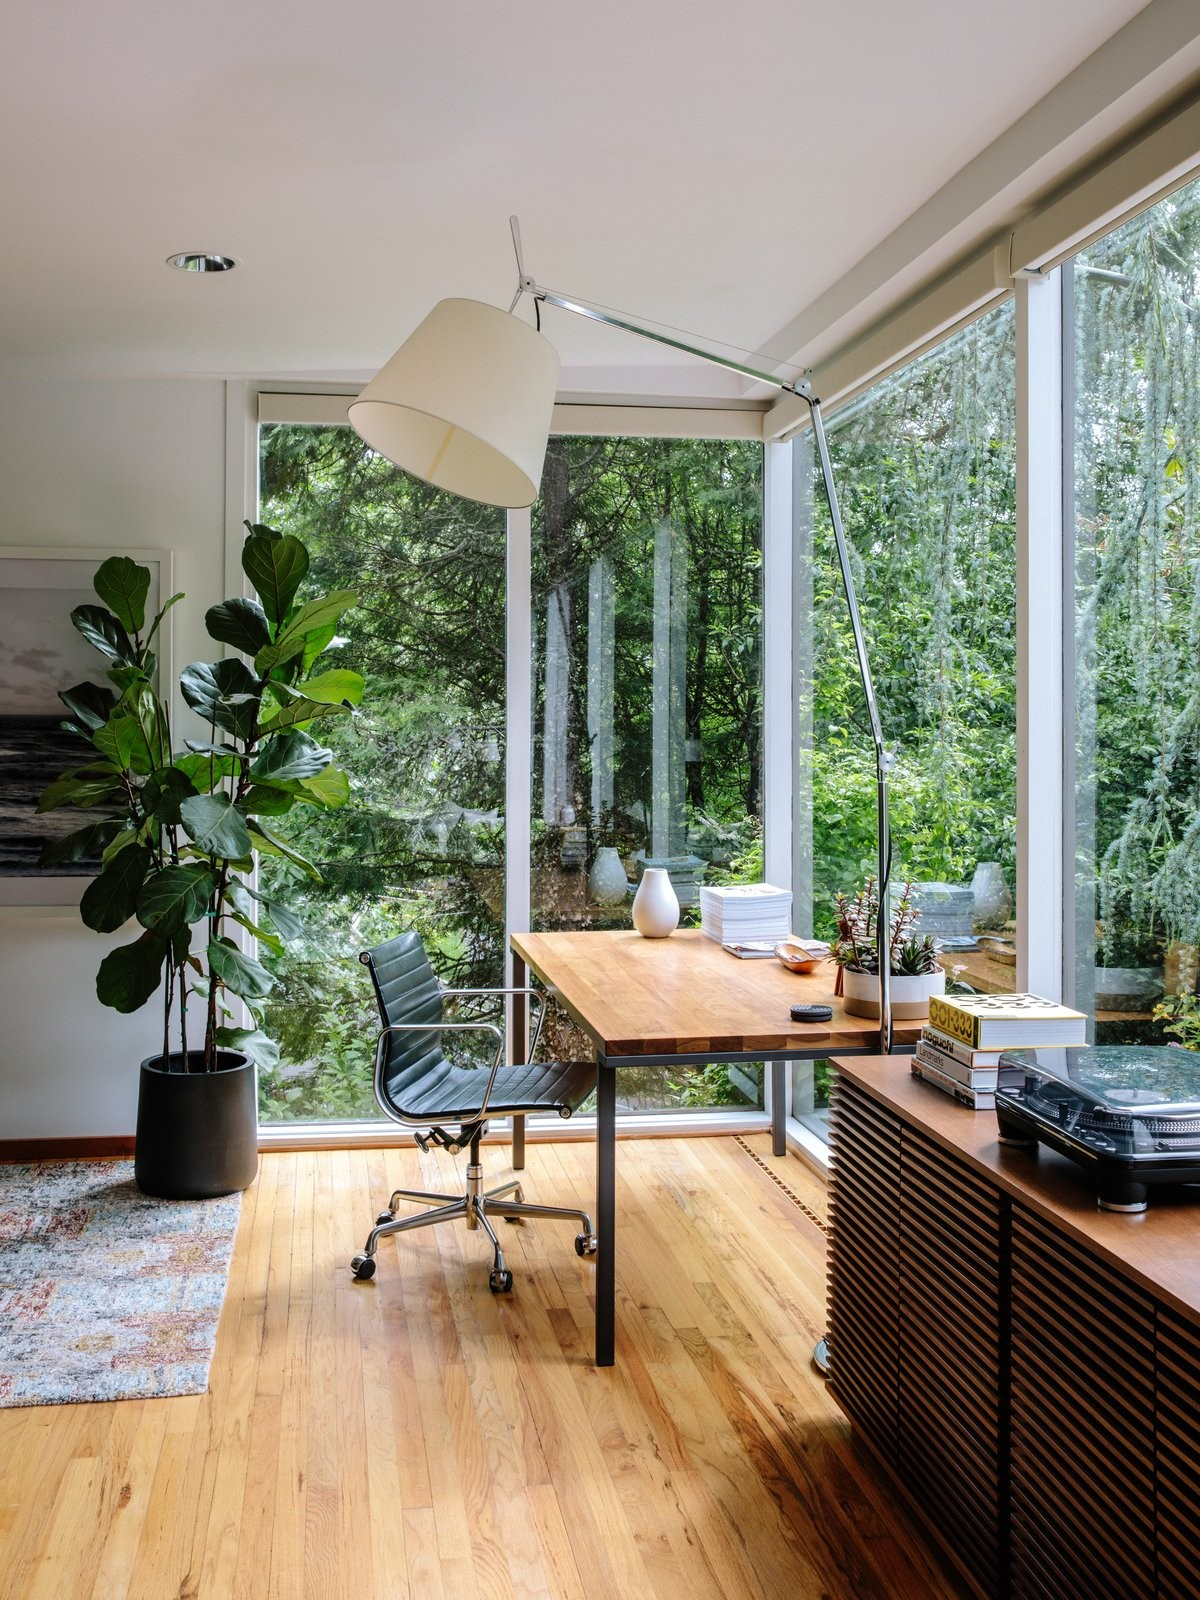 the-office-area-features-a-tolomeo-mega-floor-lamp-by-michele-de-lucchi-and-giancarlo-fassina-for-artemide.jpg